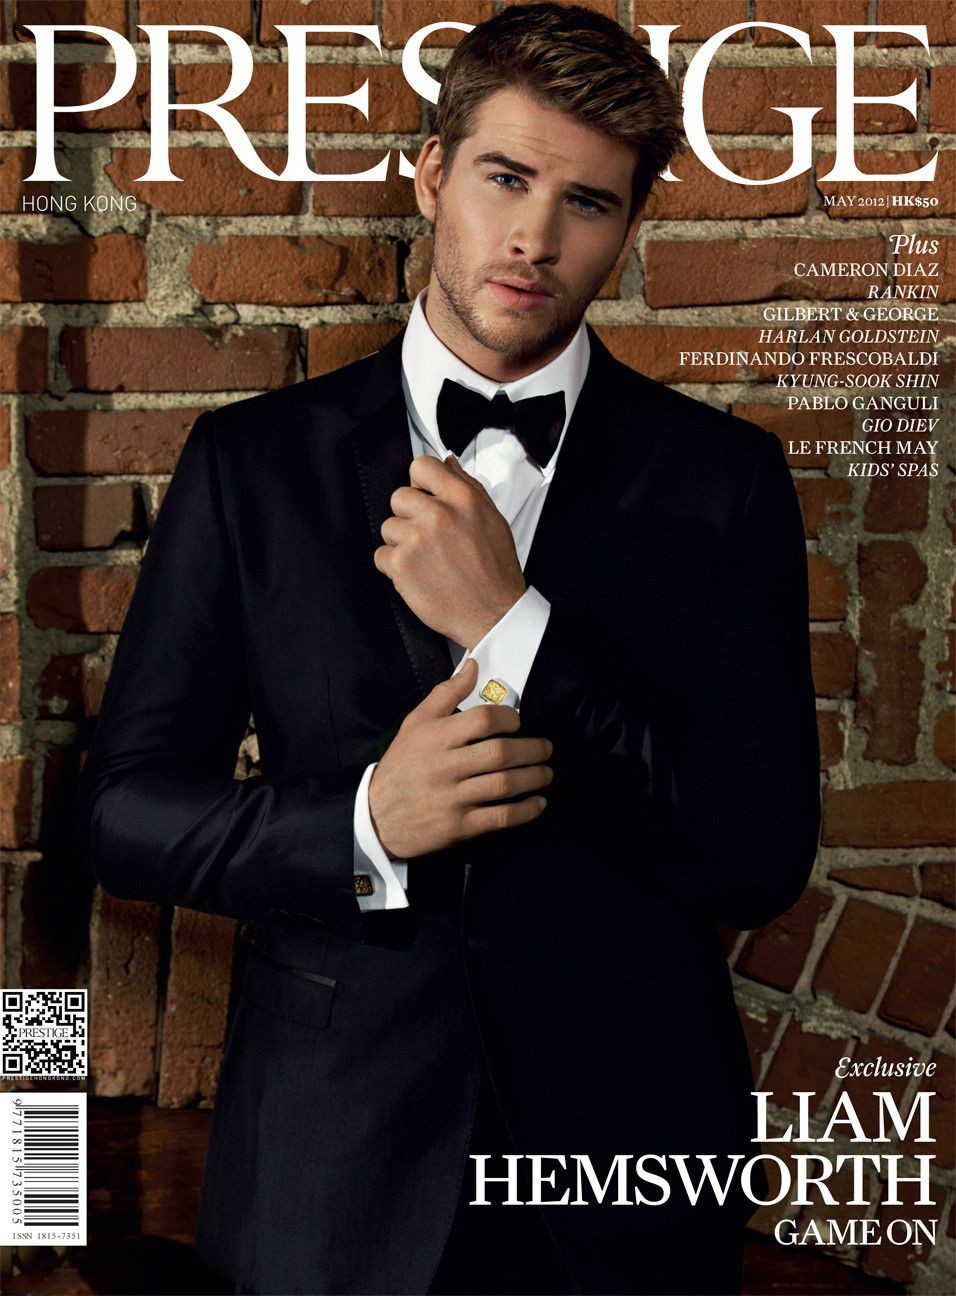 Liam Hemsworth: Liam Hemsworth: Gorgeous as a god, he married her to be over 7 years old, he married his wife - Photo 12.